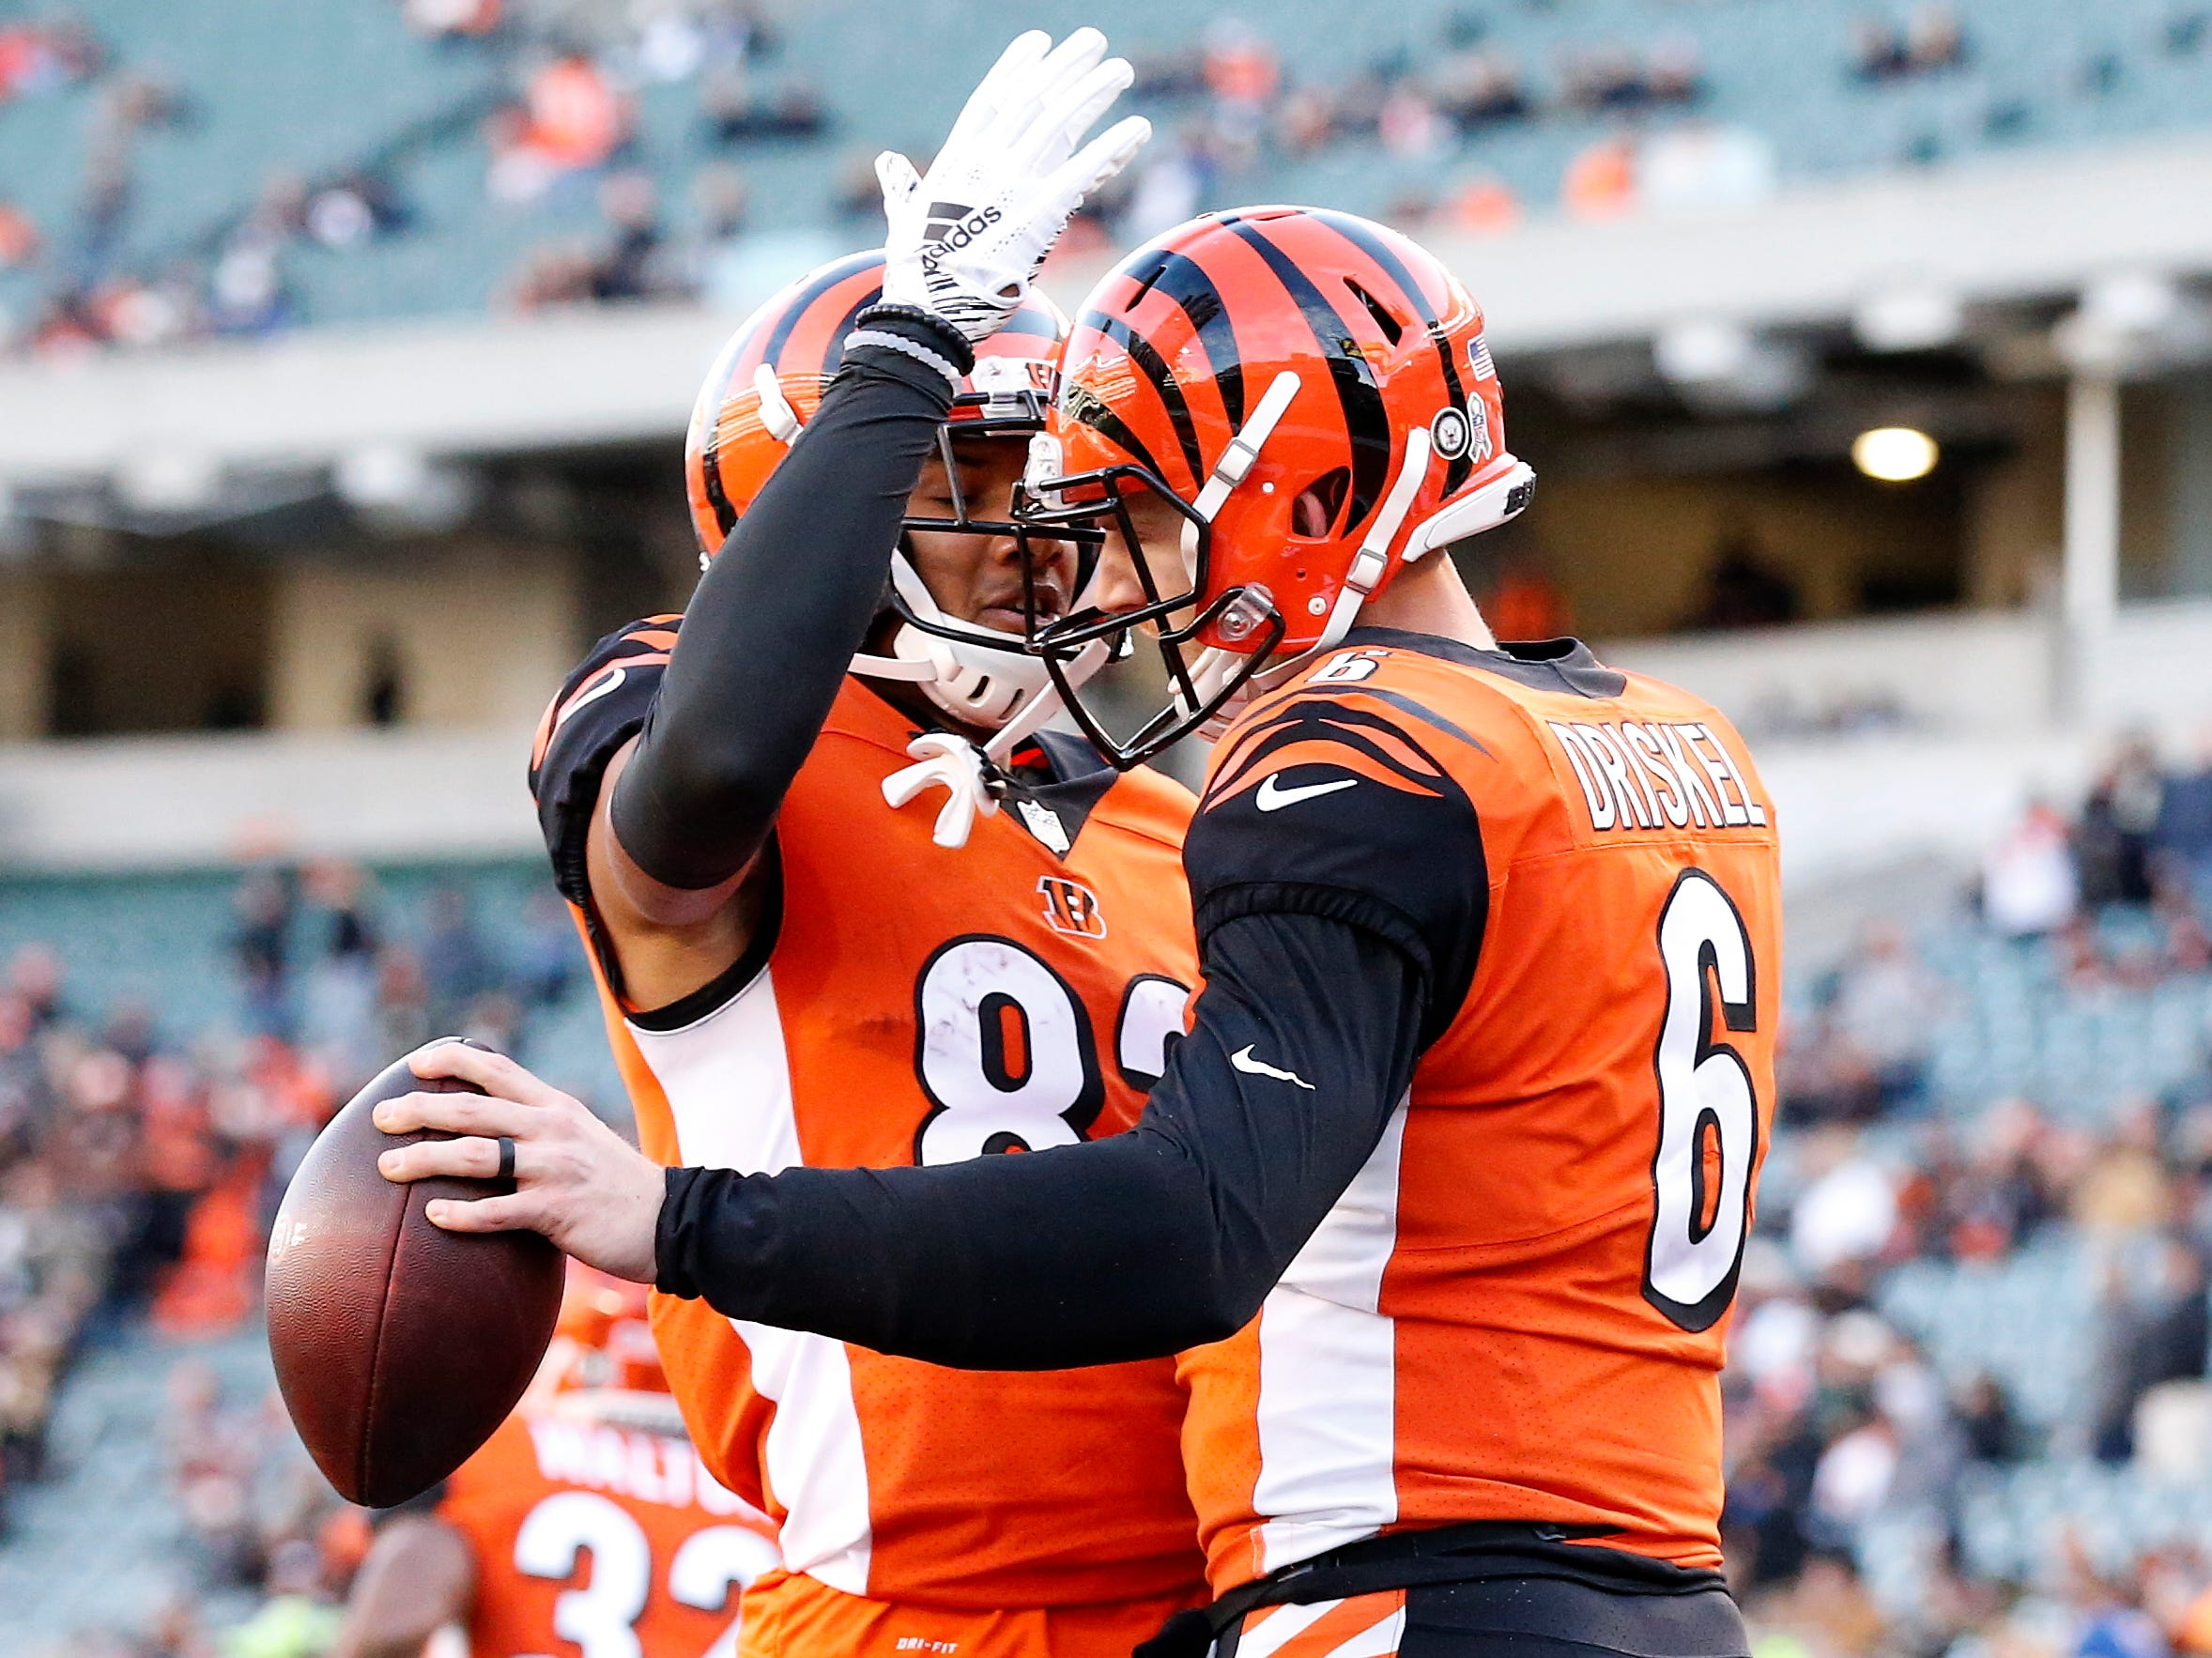 Cincinnati Bengals quarterback Jeff Driskel (6) and wide receiver Tyler Boyd (83) celebrate after Driskel's touchdown in the fourth quarter of the NFL Week 10 game between the Cincinnati Bengals and the New Orleans Saints at Paul Brown Stadium in downtown Cincinnati on Sunday, Nov. 11, 2018. The Saints beat the Bengals 51-14.